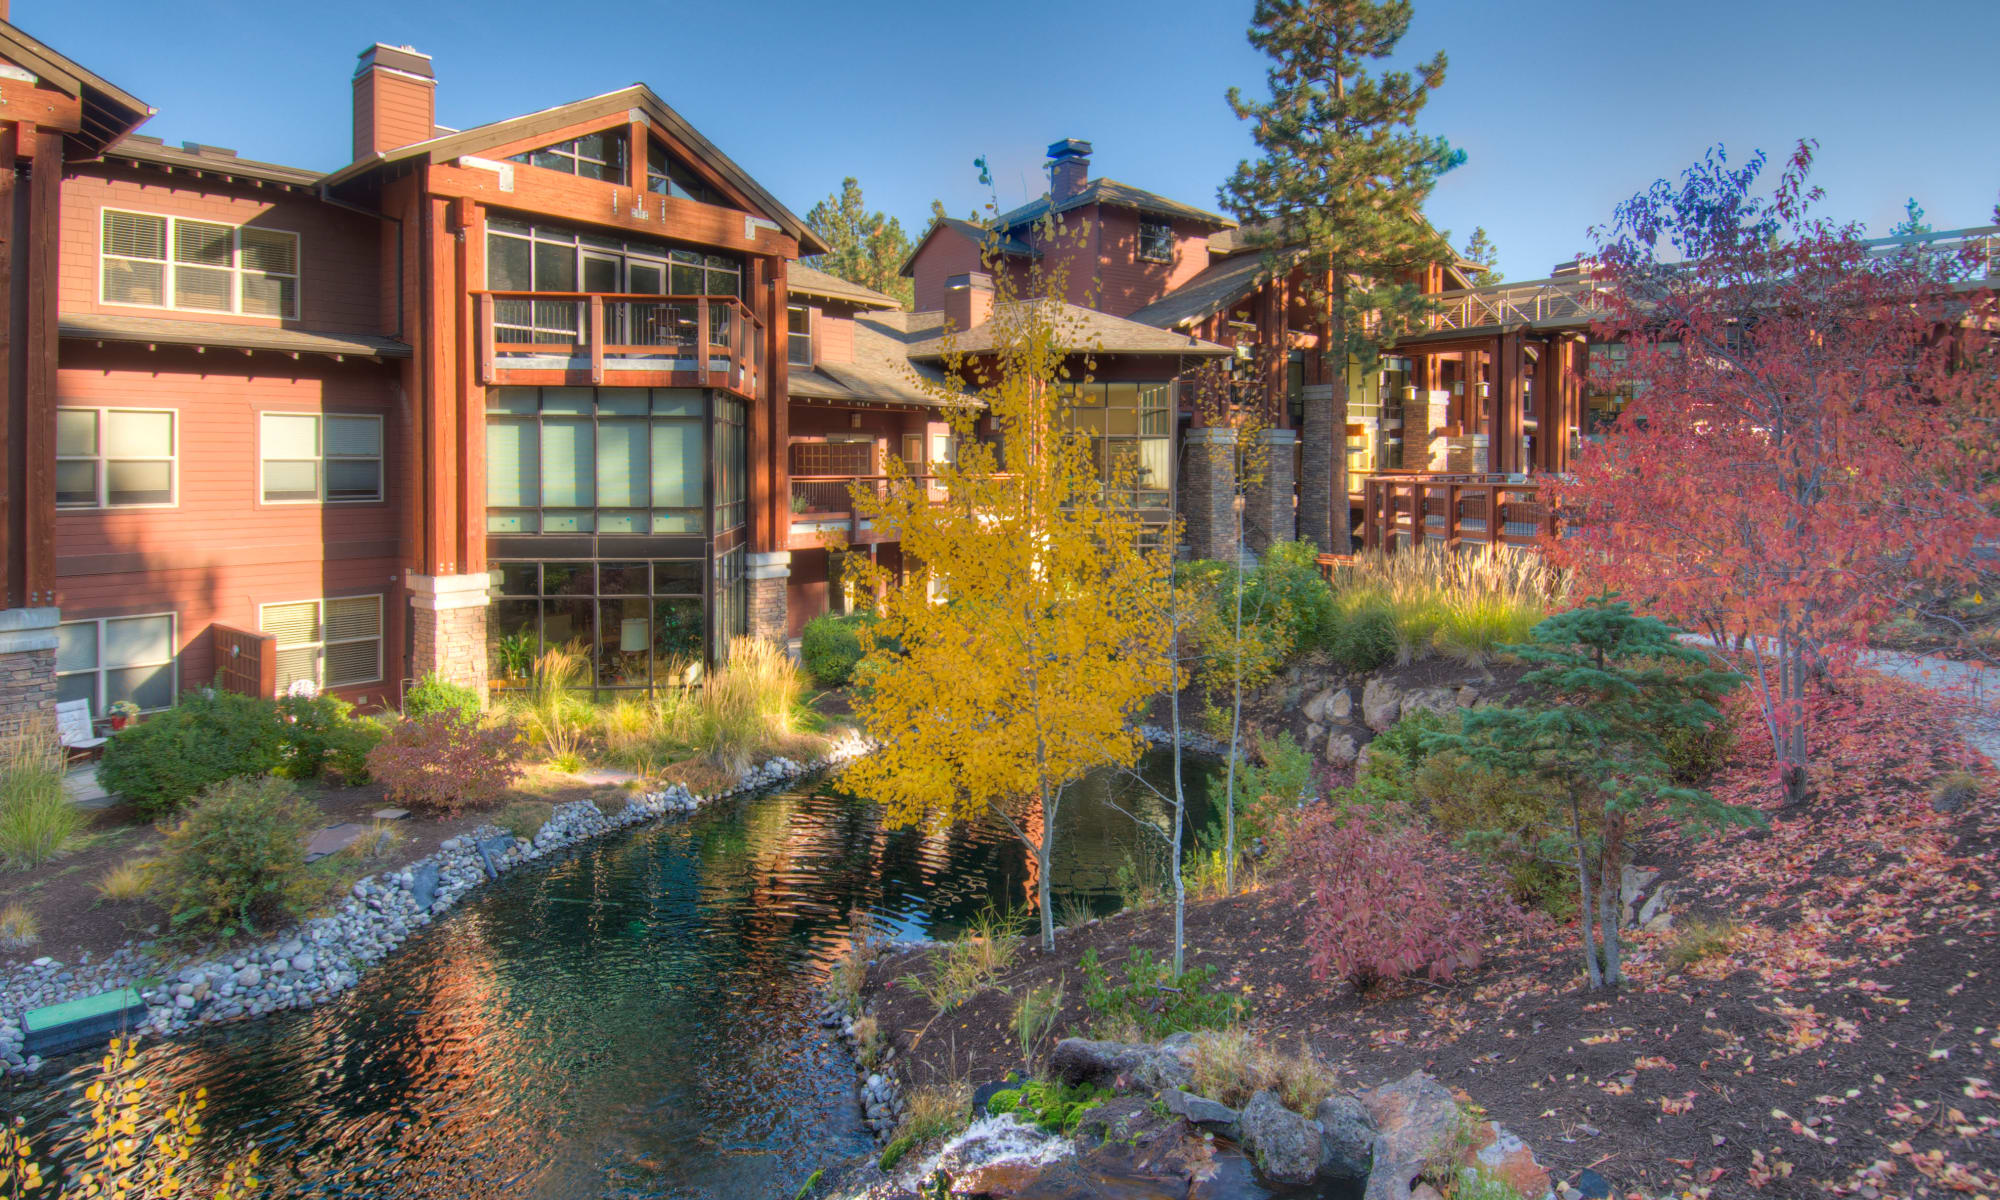 The exterior of the river lodge at Touchmark at Mount Bachelor Village in Bend, Oregon